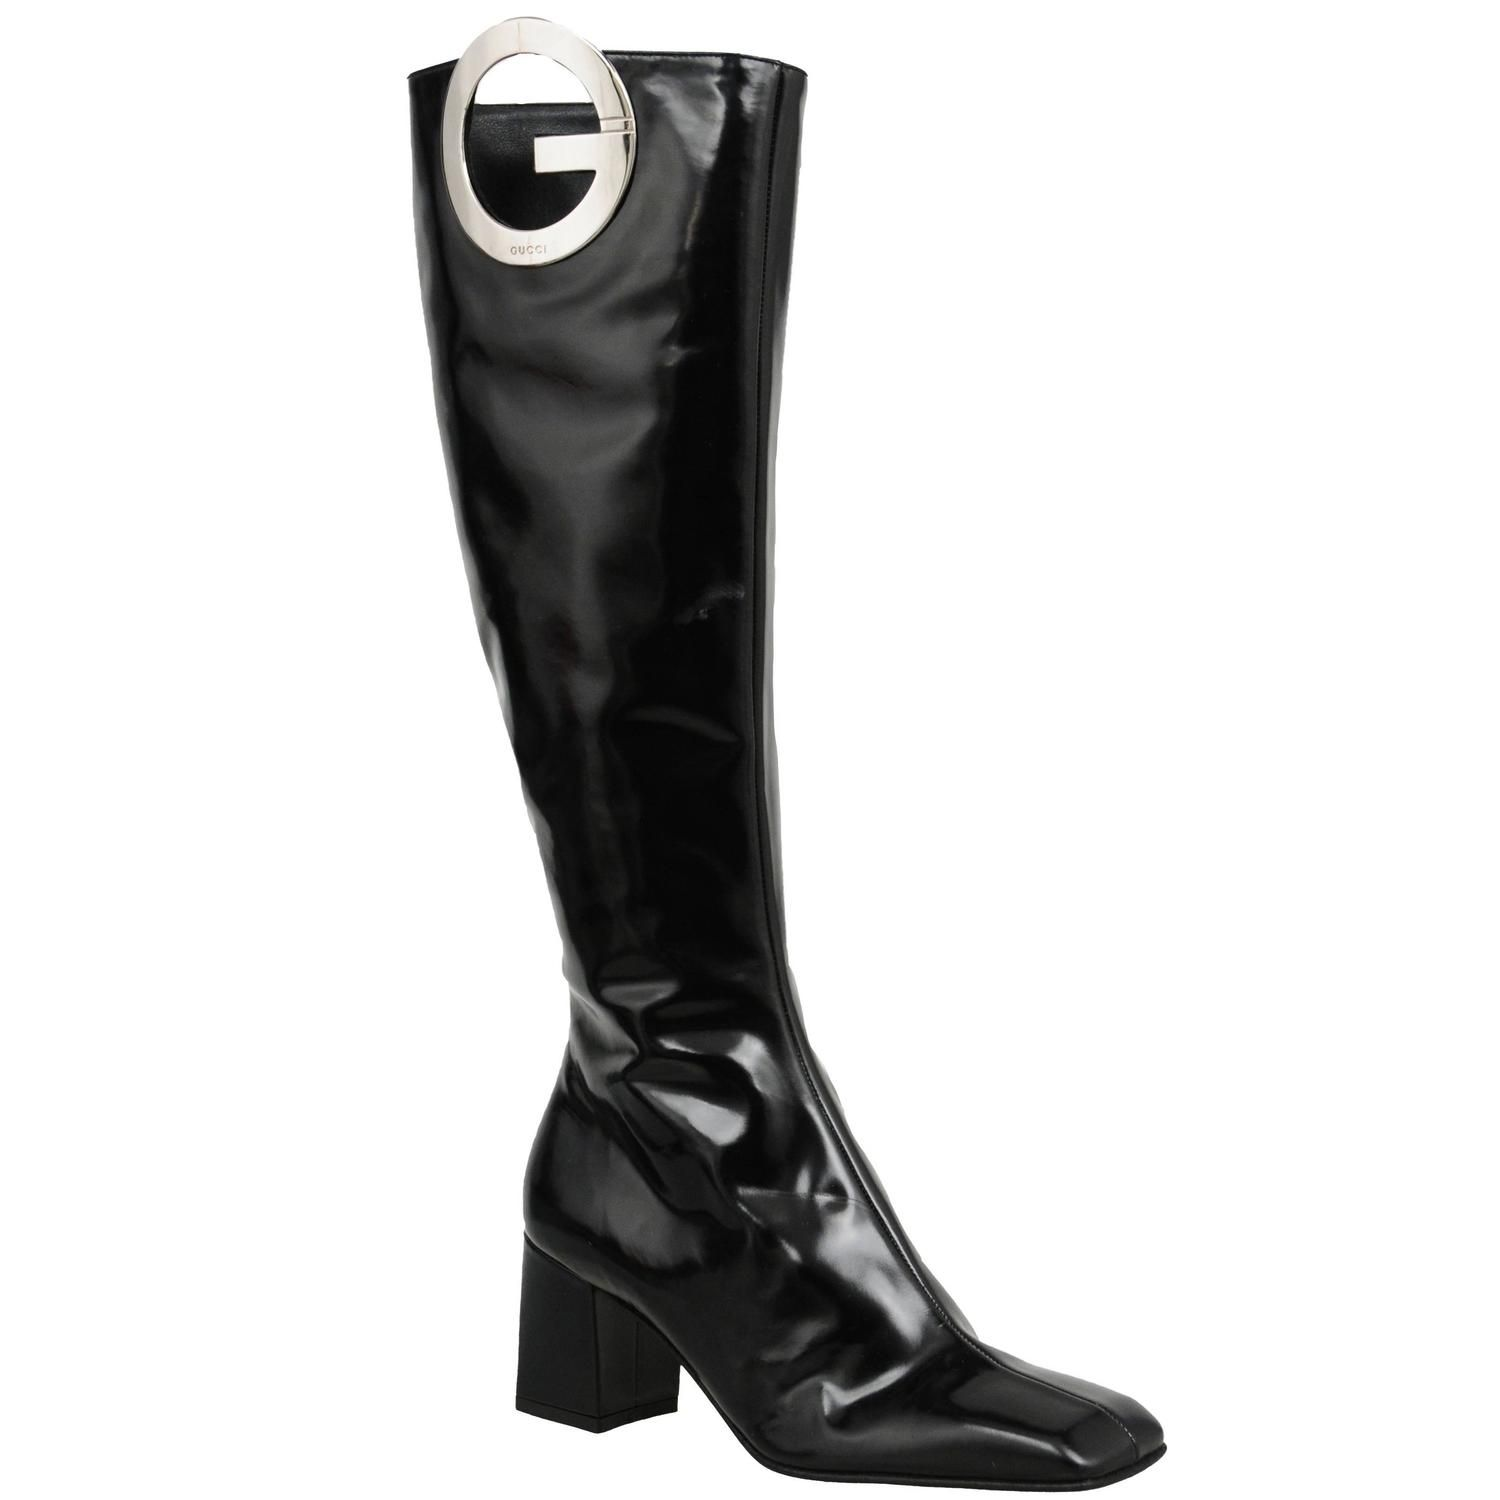 Tom Ford for Gucci Patent 'G' Boots